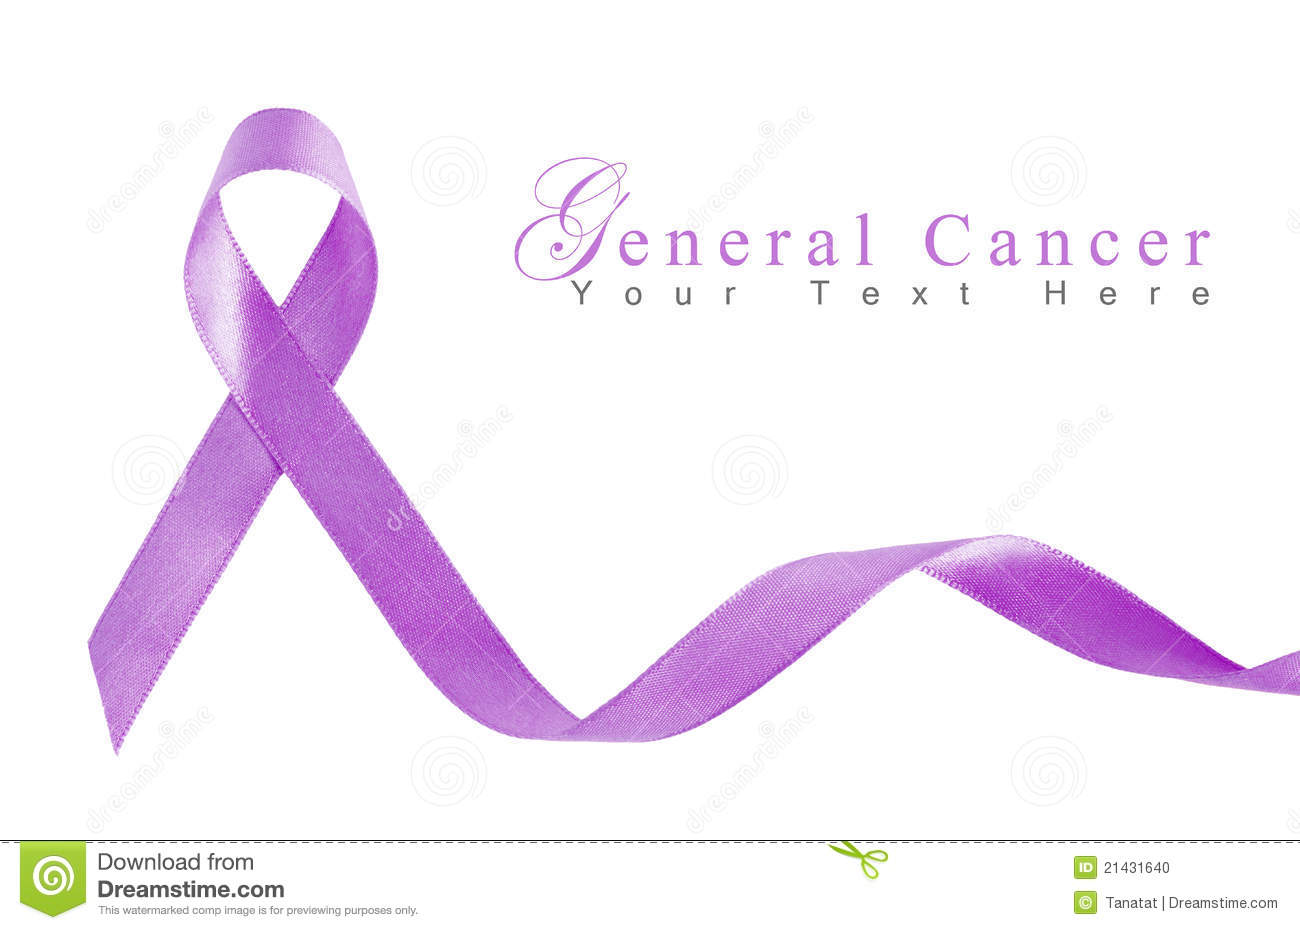 Lavender Ribbon for general Cancer